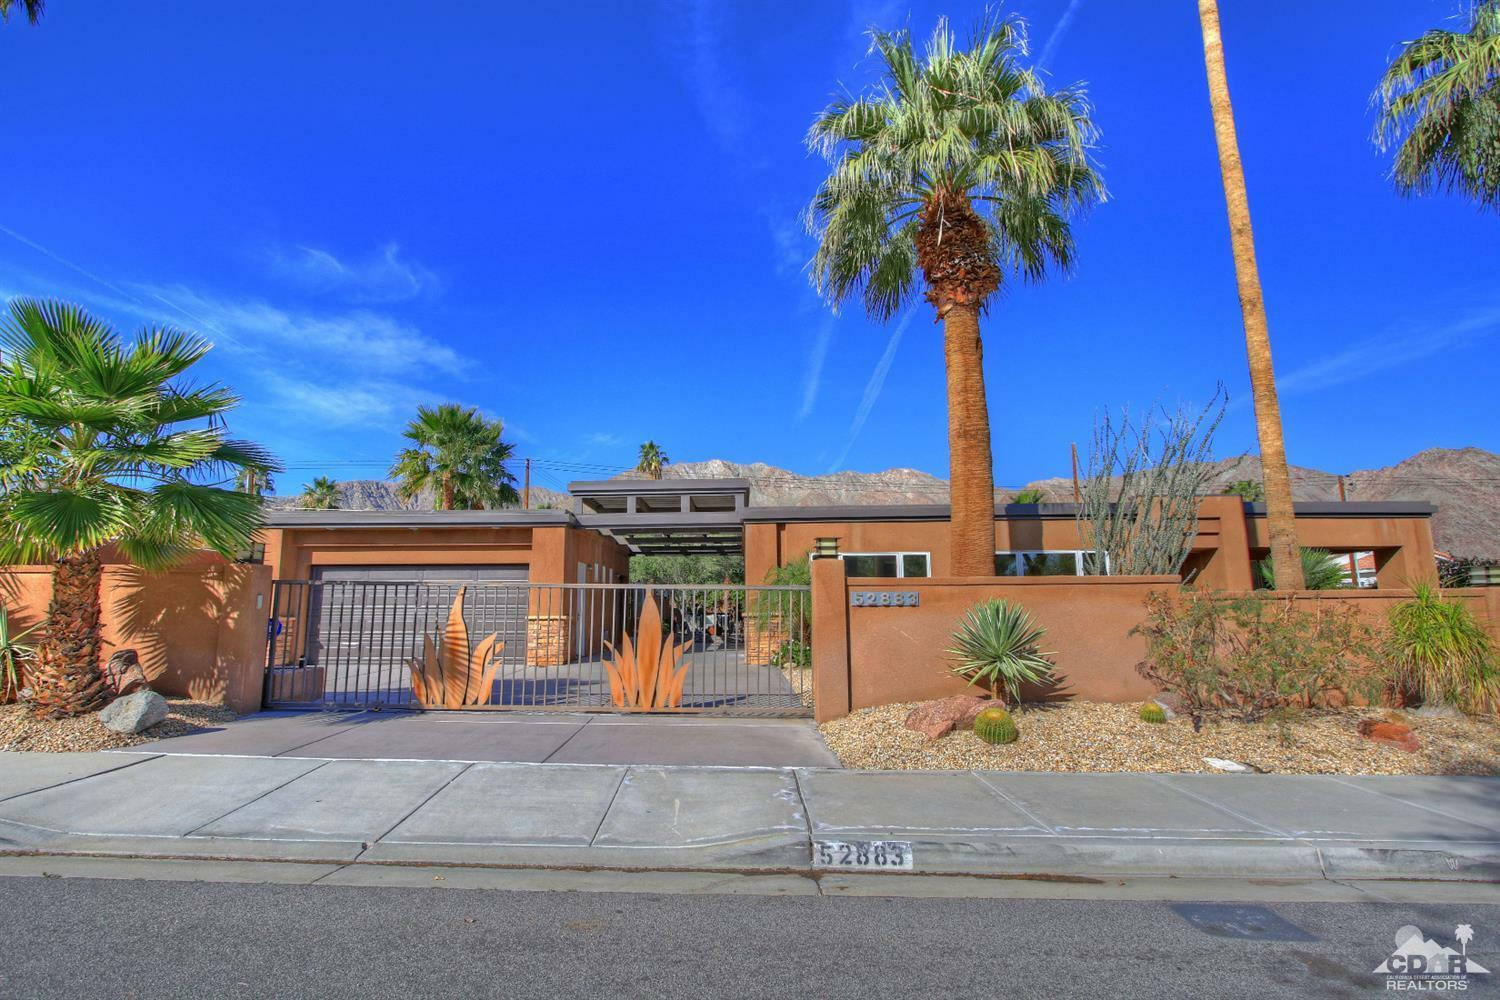 52883 Eisenhower Drive, La Quinta, CA - USA (photo 2)